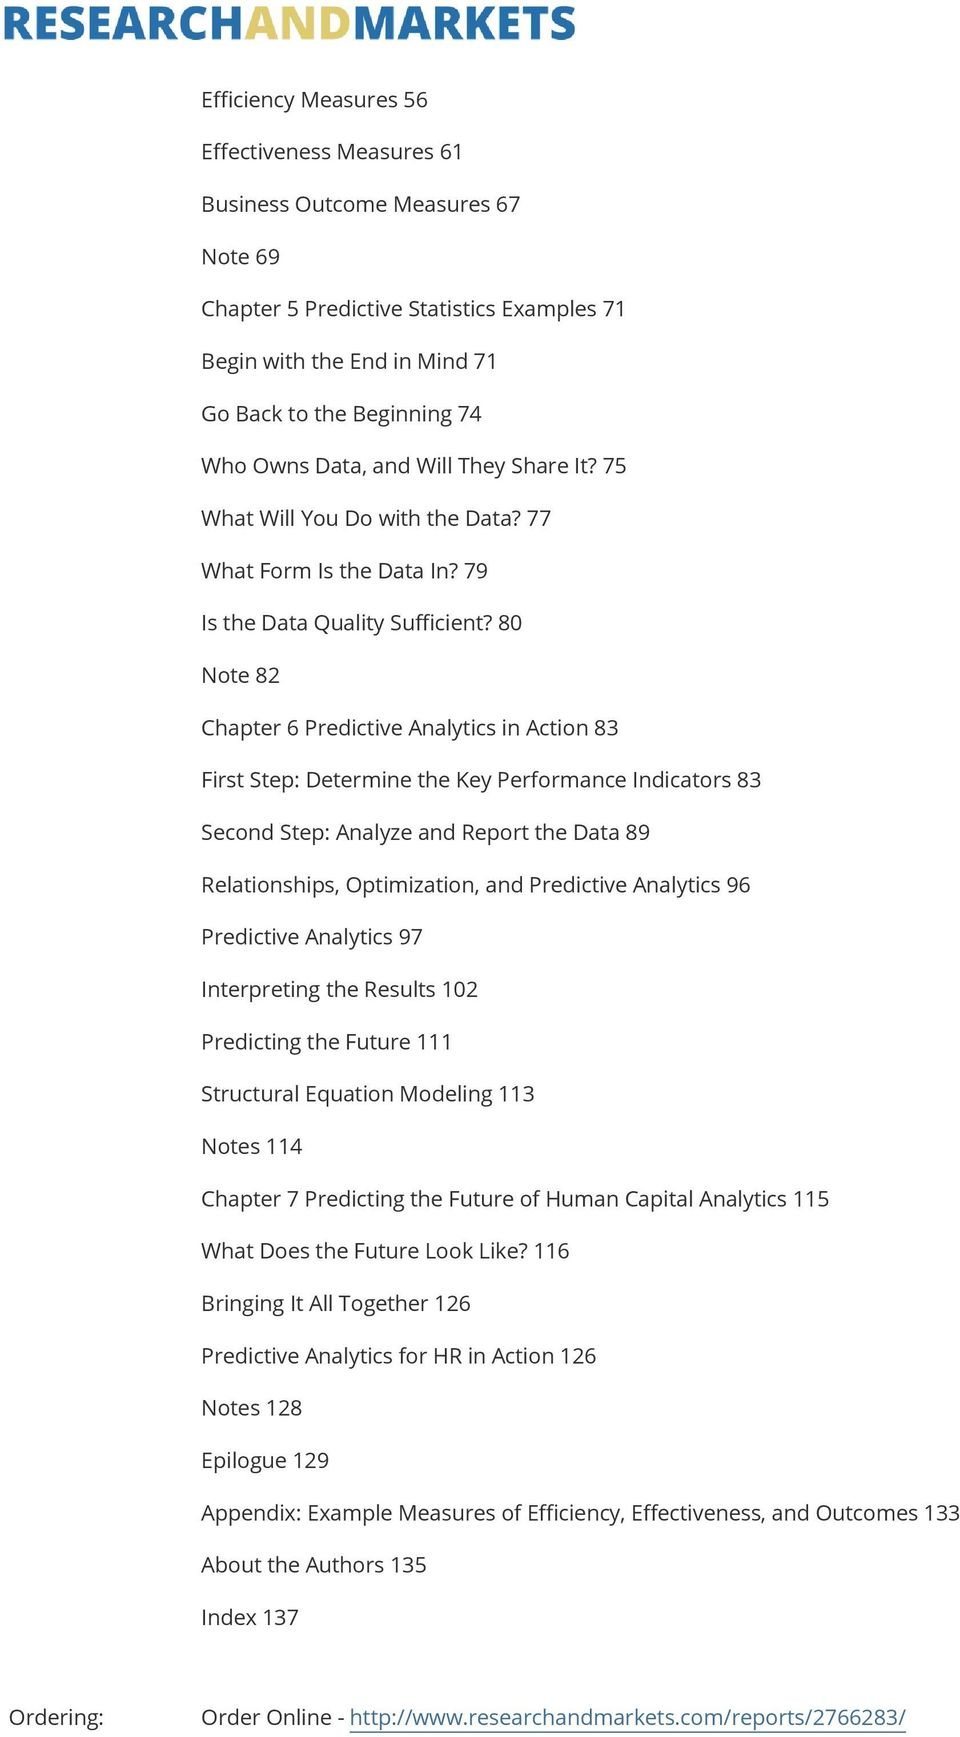 80 Note 82 Chapter 6 Predictive Analytics in Action 83 First Step: Determine the Key Performance Indicators 83 Second Step: Analyze and Report the Data 89 Relationships, Optimization, and Predictive